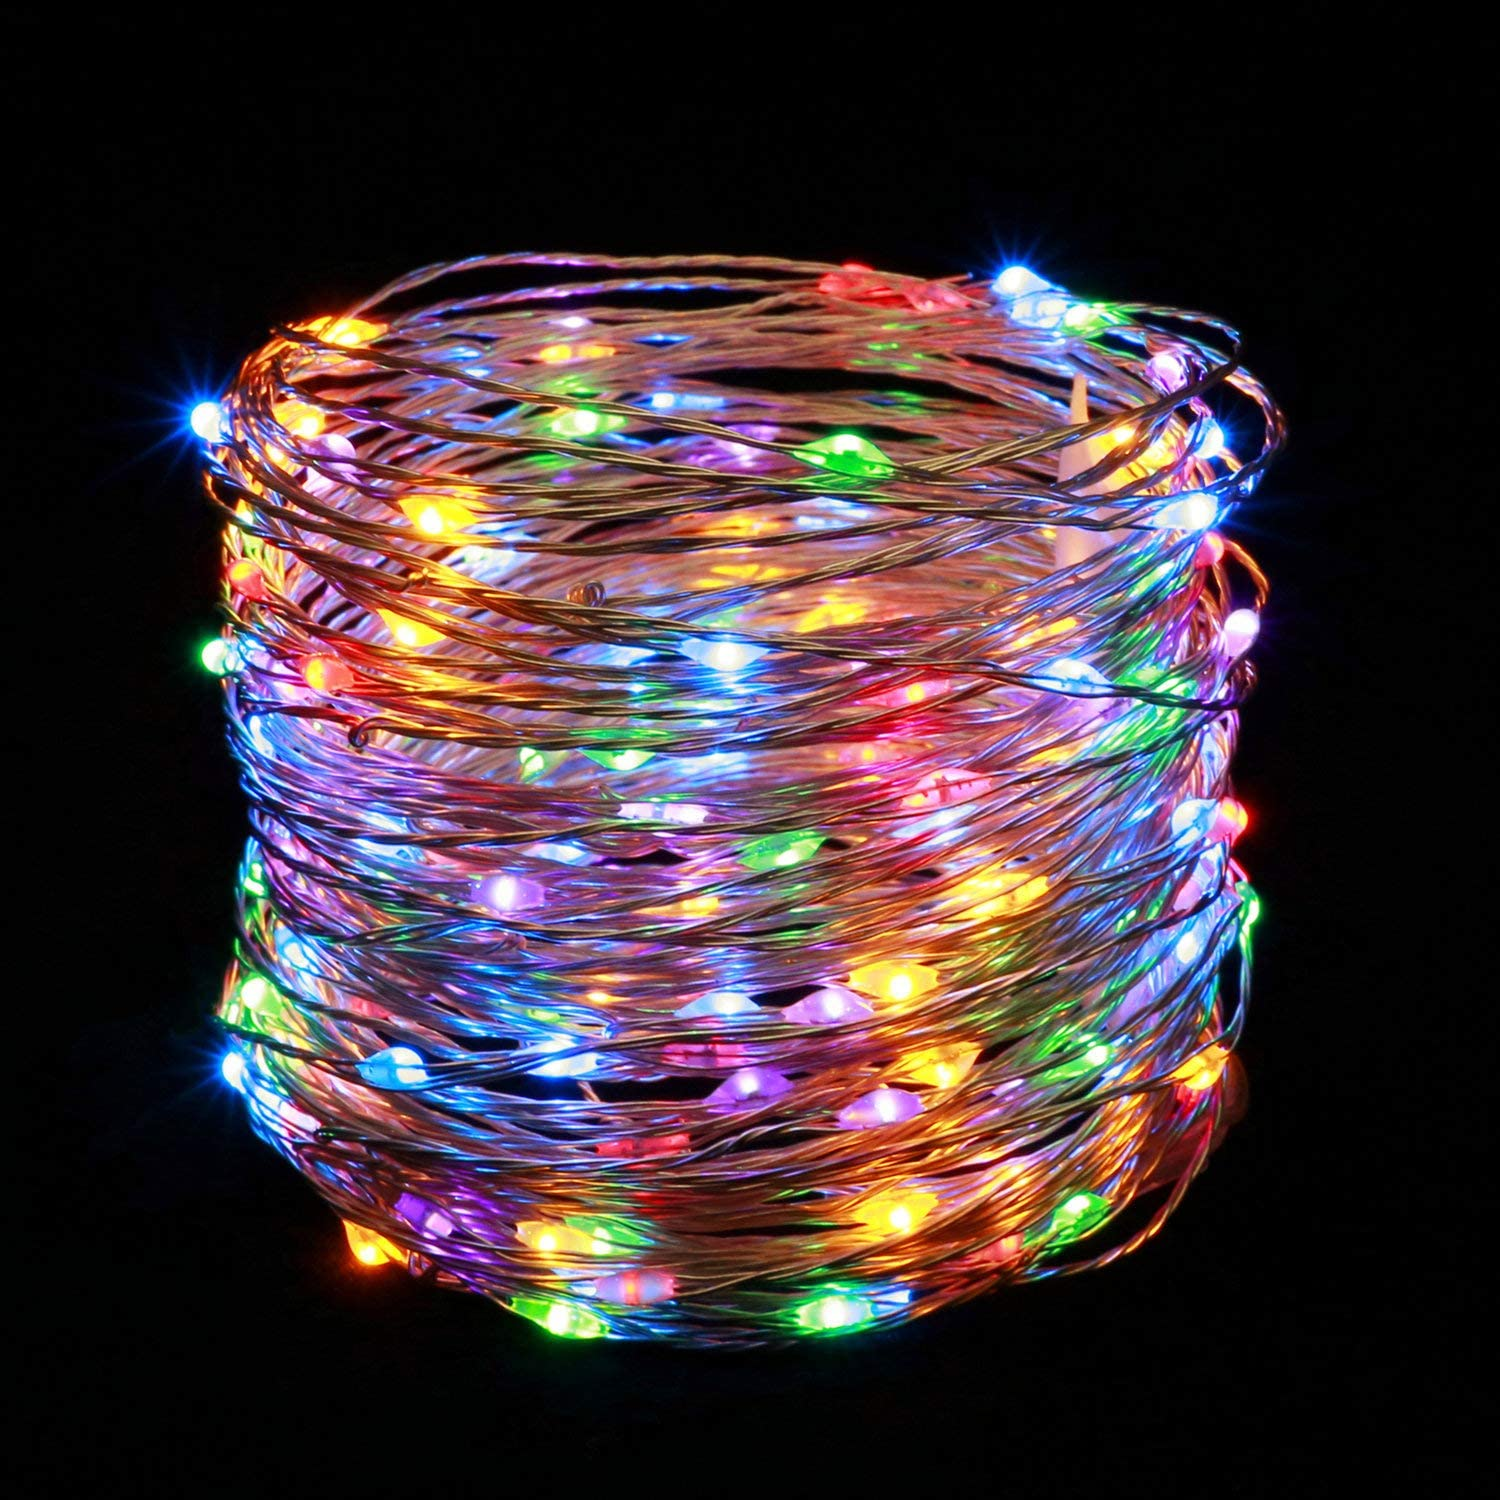 YULETIME Fairy String Lights with Adapter, 66 Ft 200 LEDs Waterproof Starry Copper Wire Lights, Home Decor Firefly Lights for Garden Backyard Christmas Tree (Multicolor, Coppery Wire)